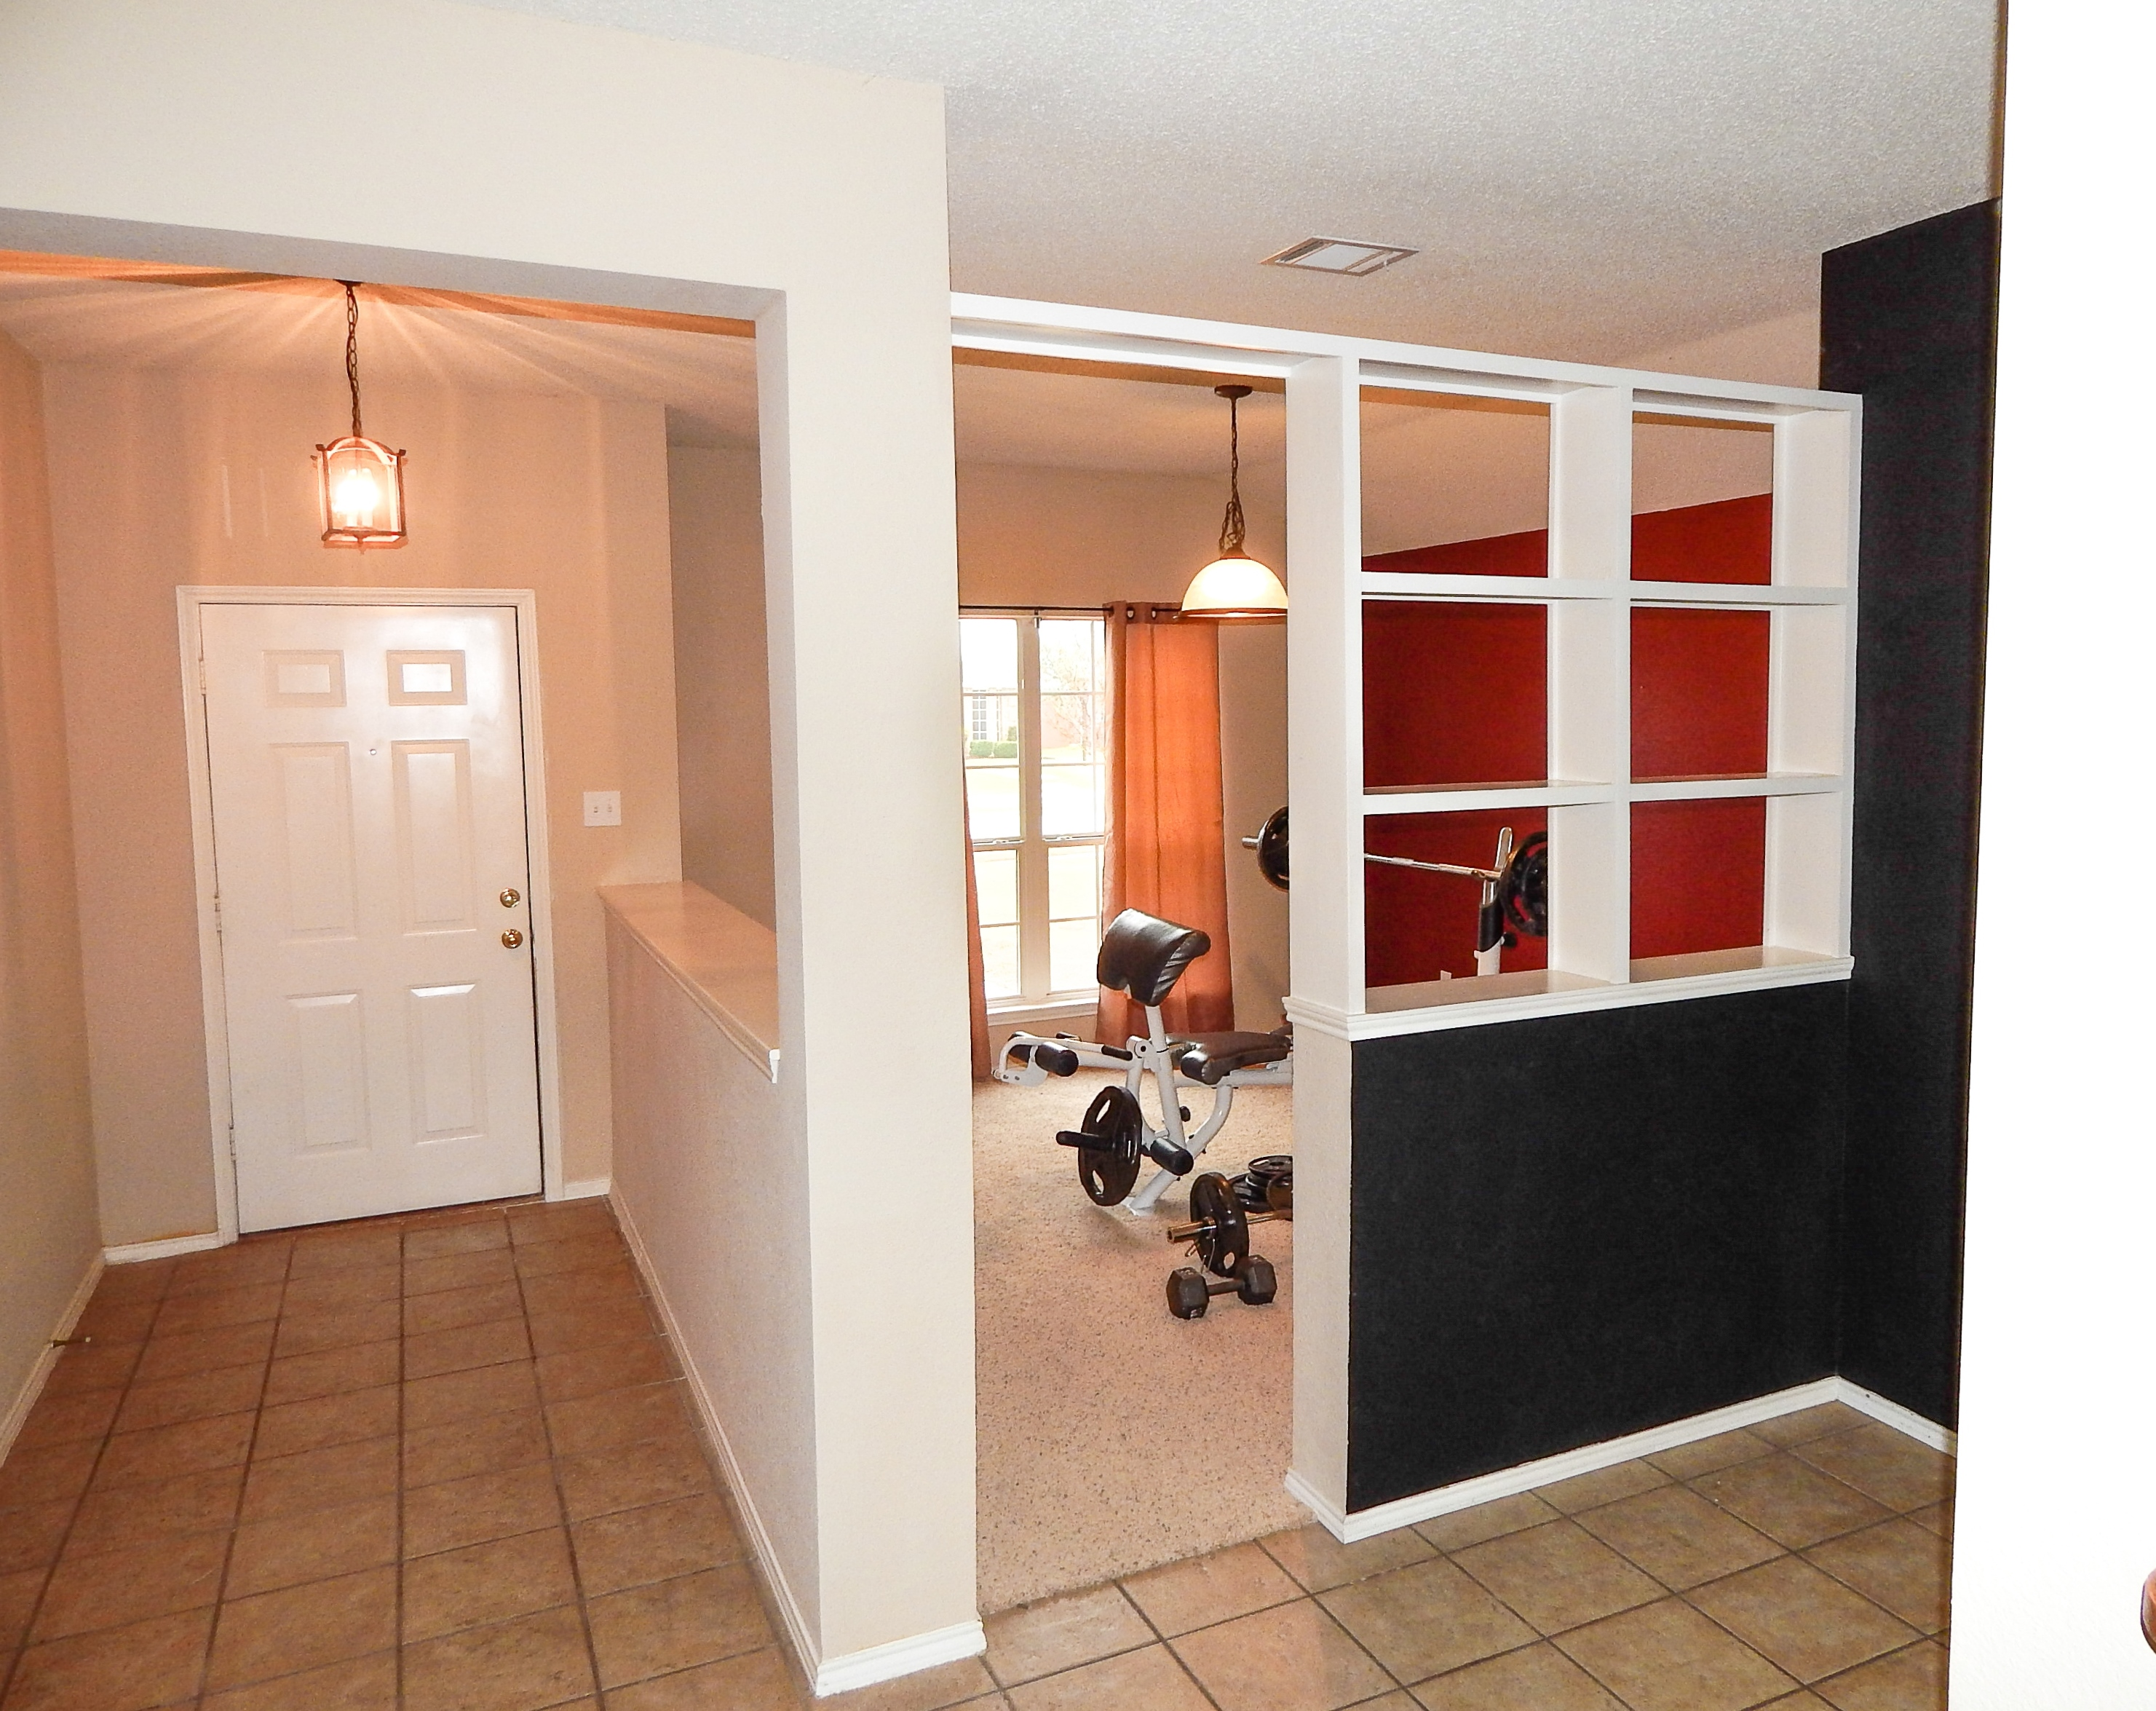 Sold 4 bedroom home for sale in rowlett tx crossroads for What is the square footage of a 15x15 room